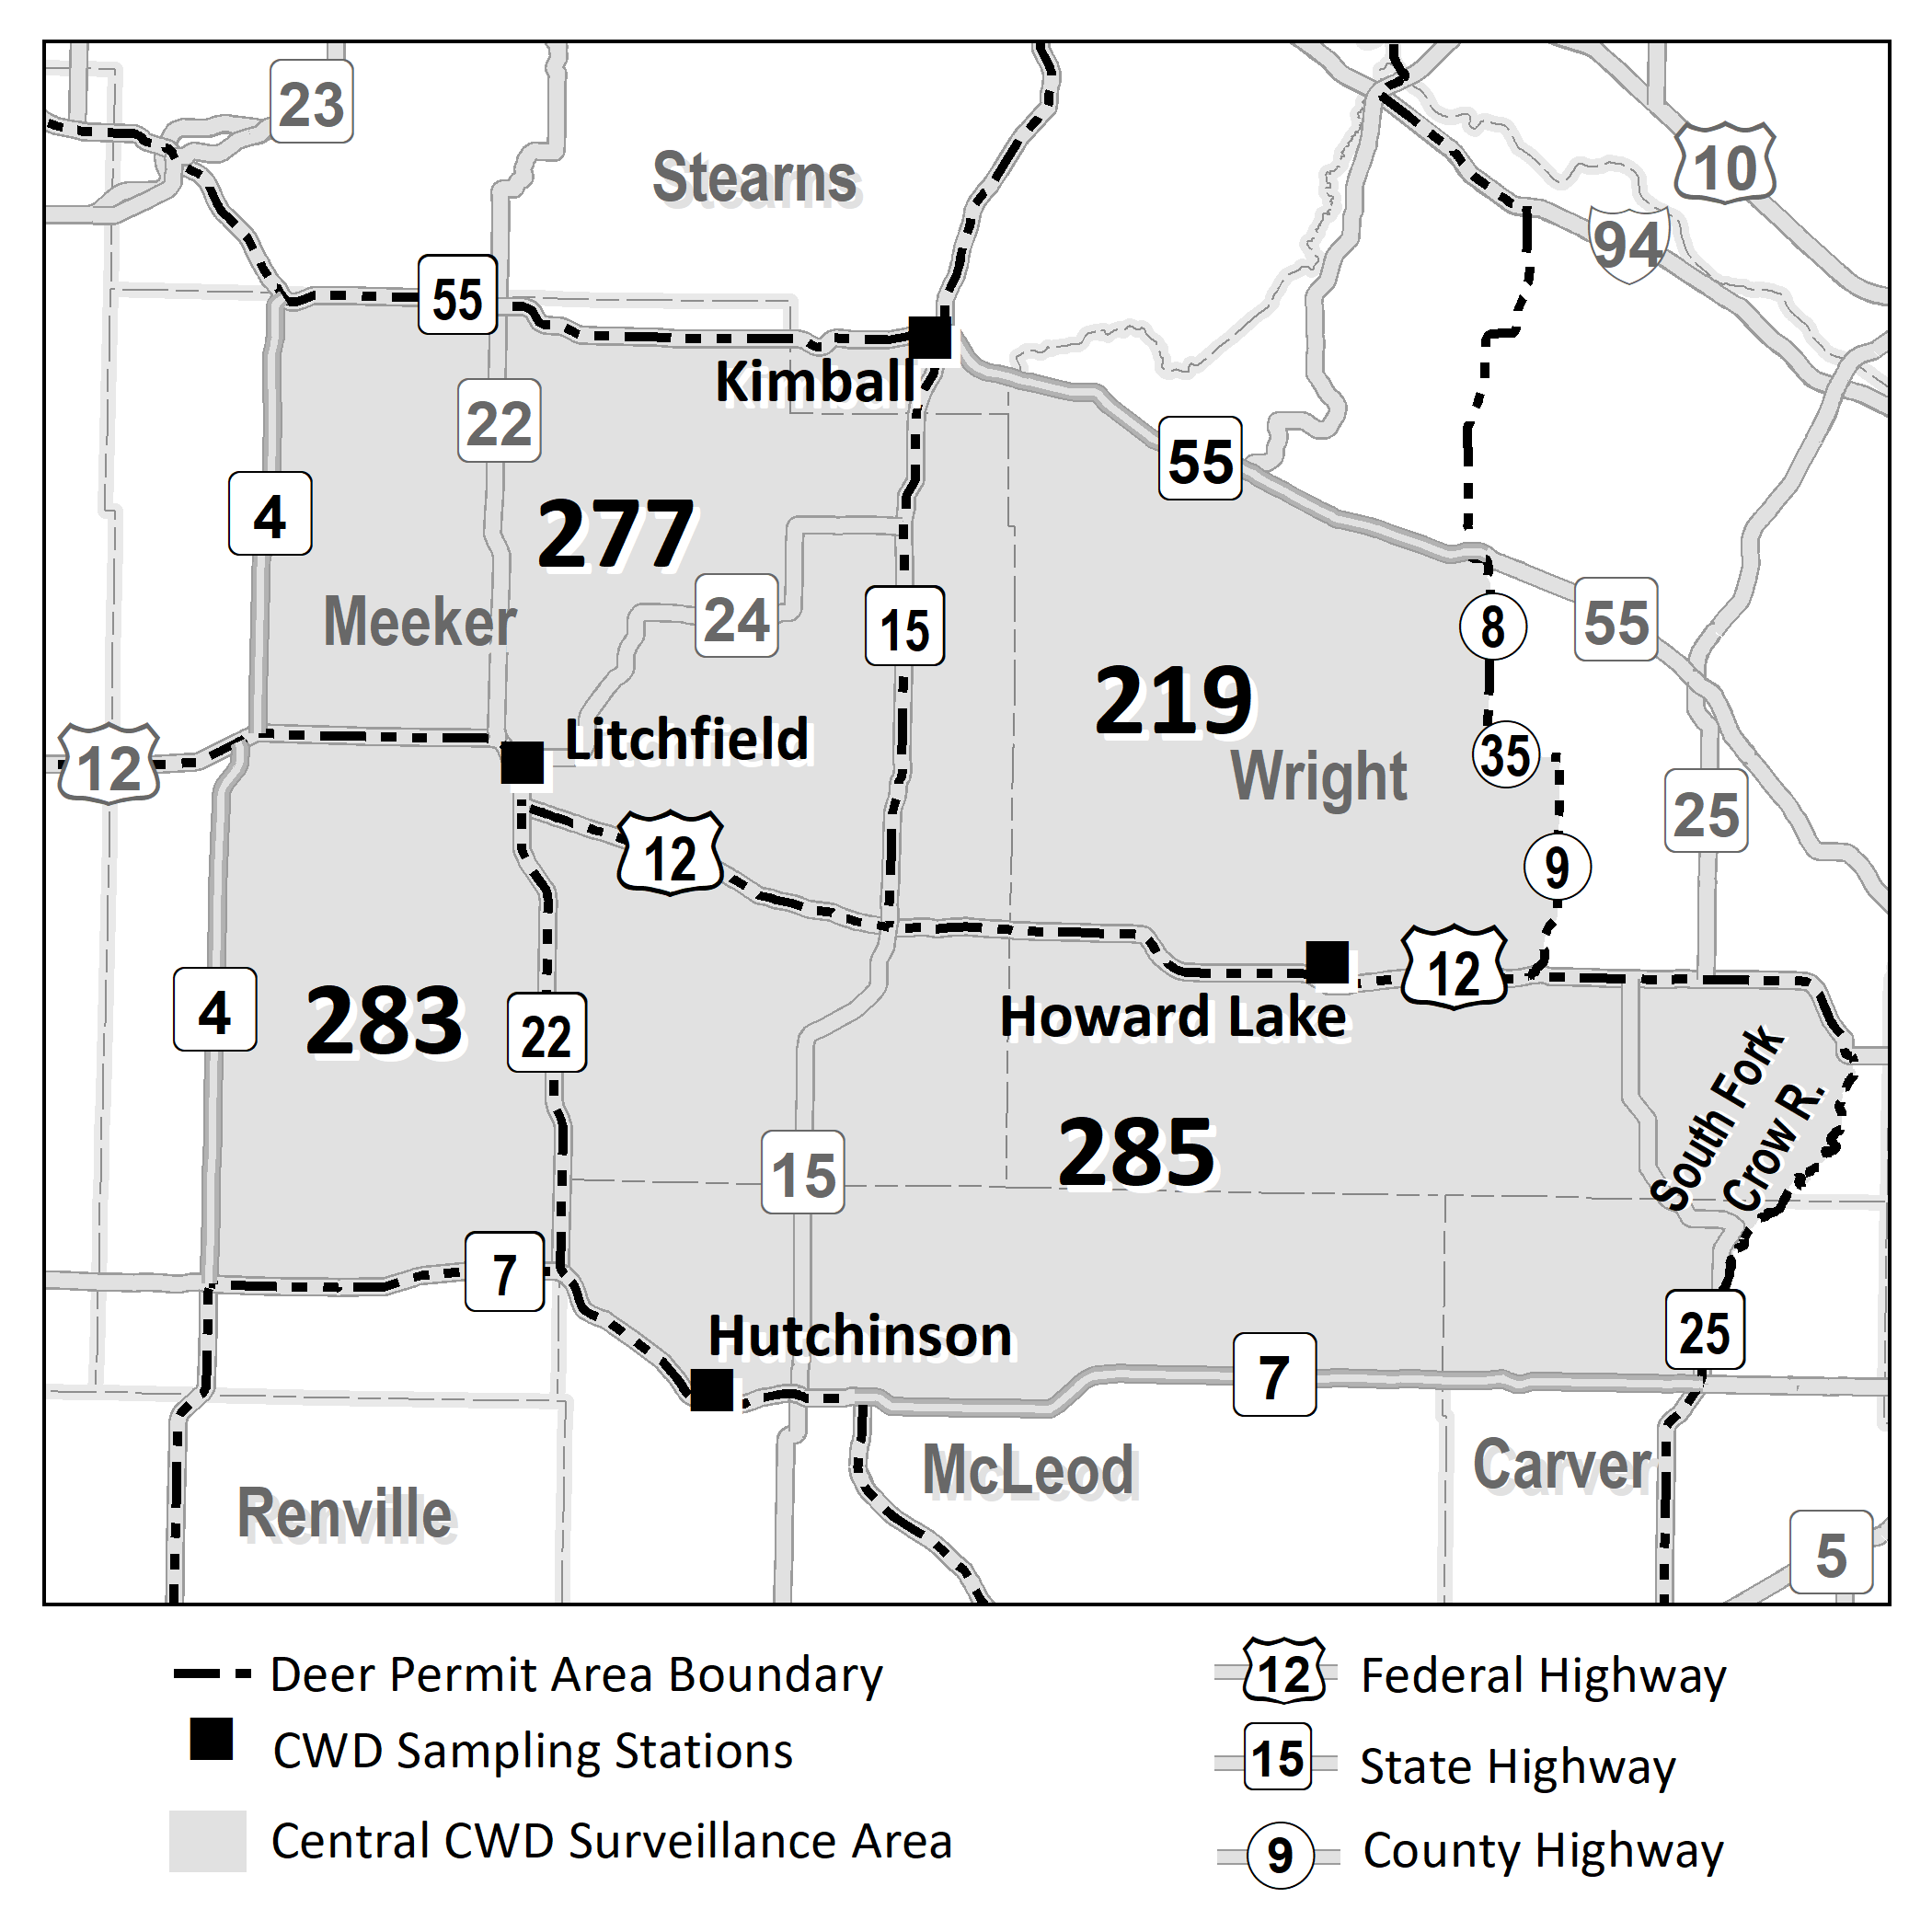 Map highlighting the DPAs included in the central CWD surveillance area (277, 283, 219, 285) and sampling stations.